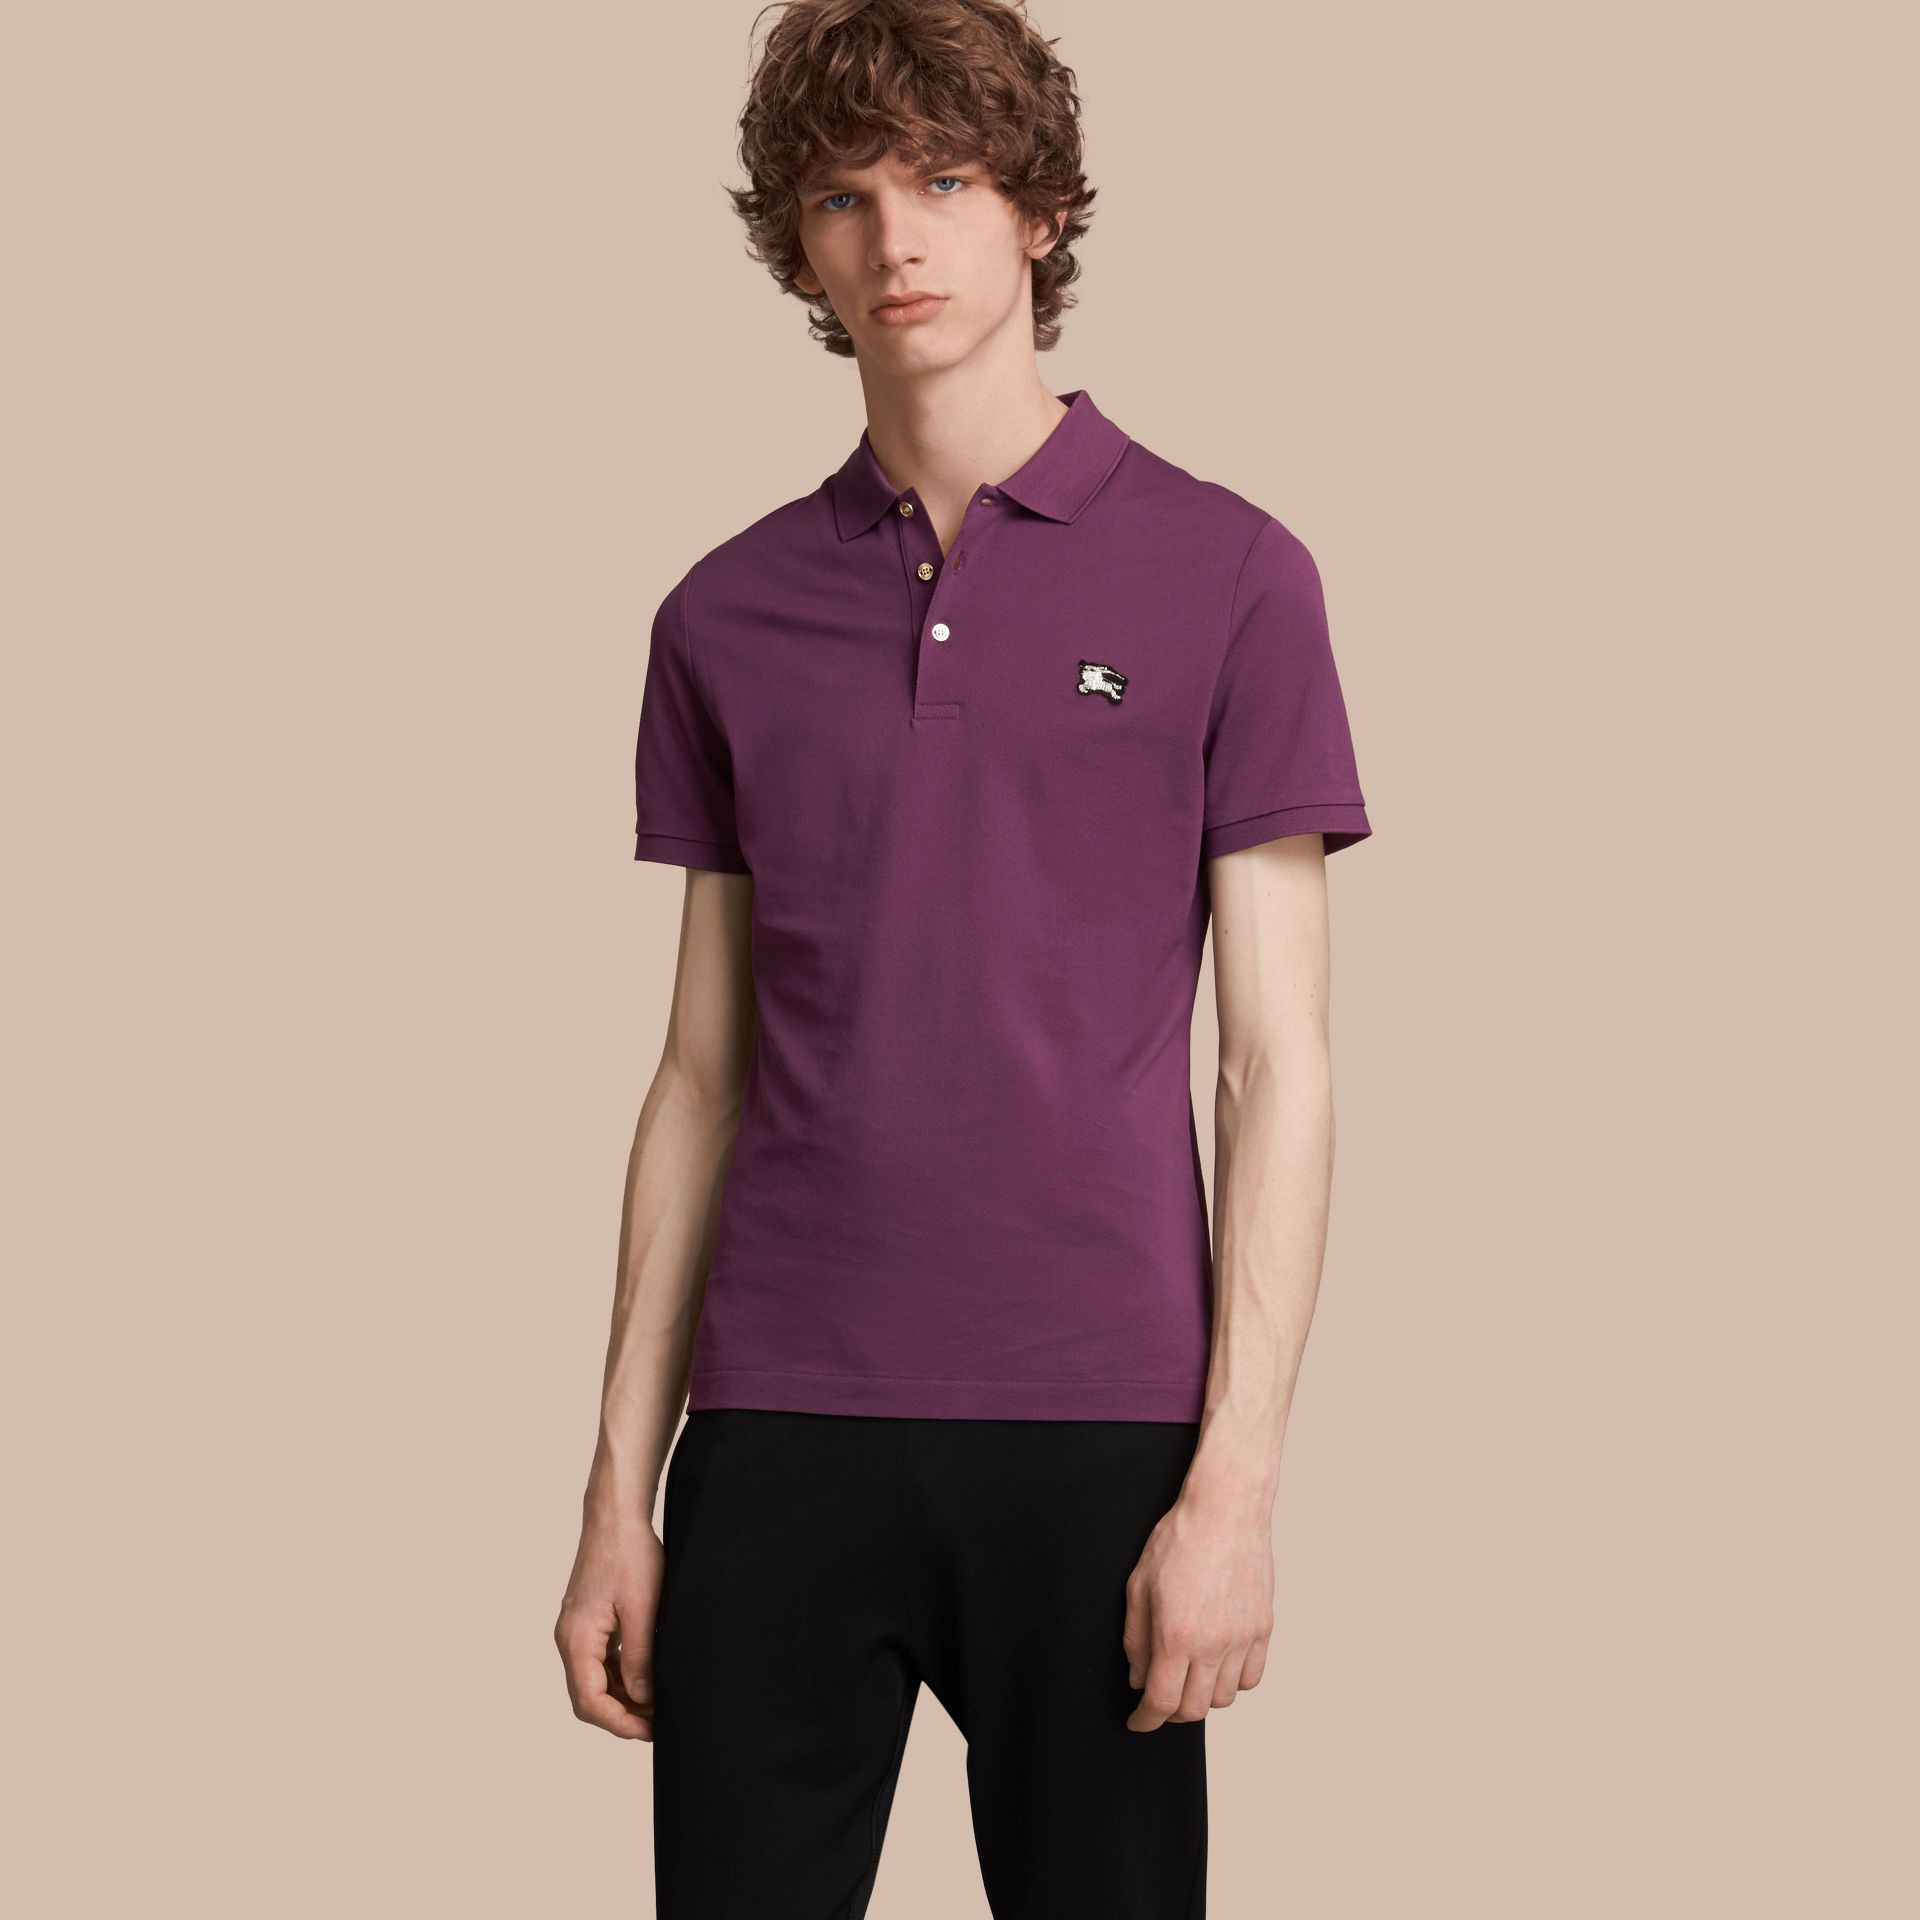 Cotton Piqué Polo Shirt in Heather - Men | Burberry - gallery image 1